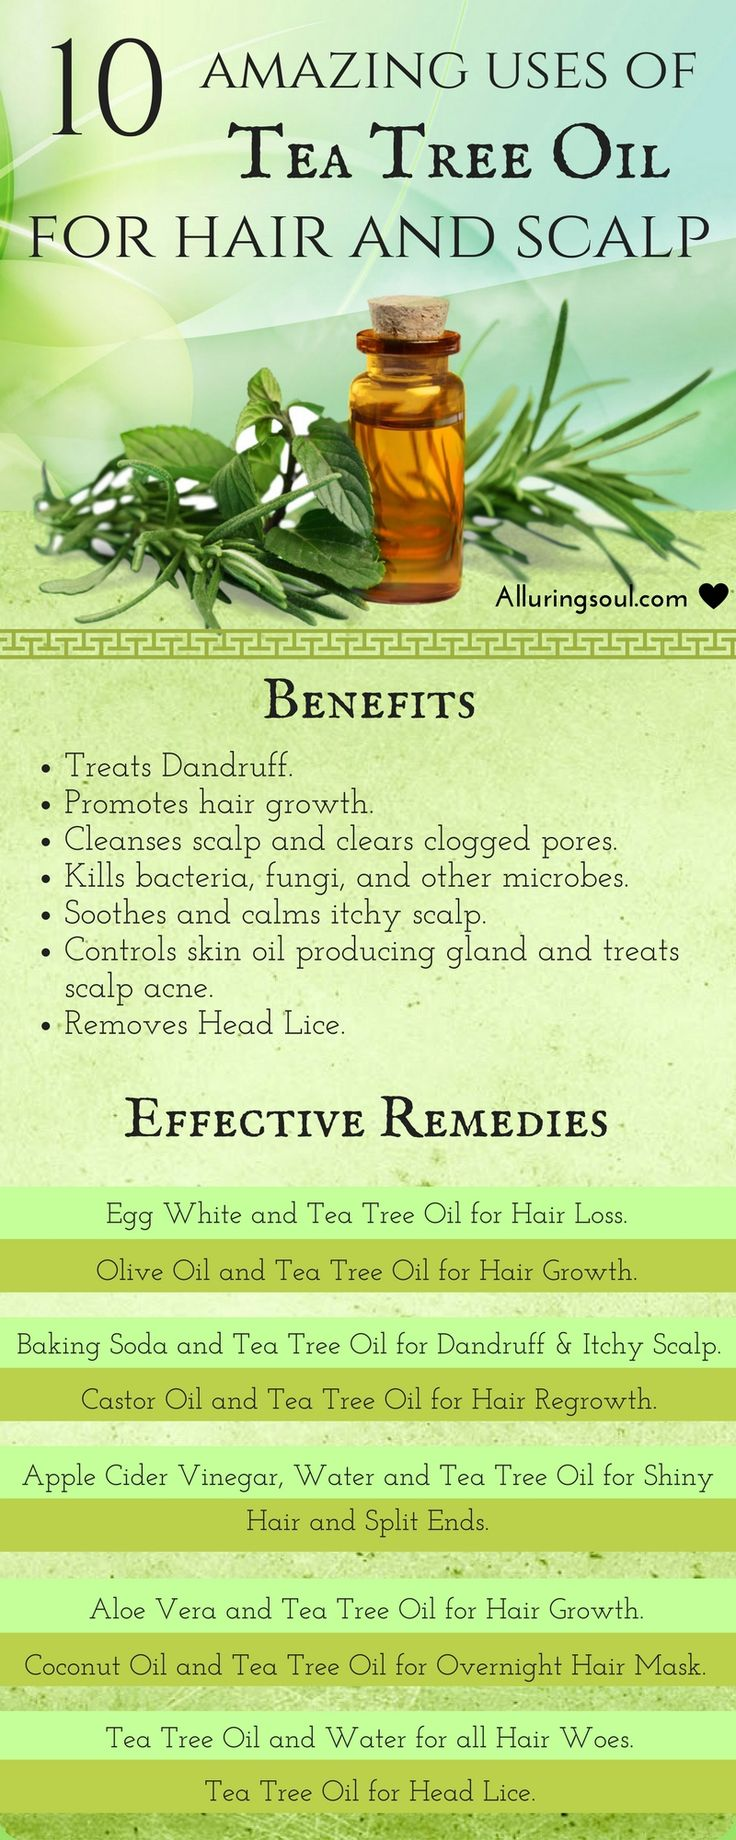 Tea tree oil for hair is considered as one of the best herb's oil to treat hair problems. It removes dandruff, promotes hair growth & has many more benefits.